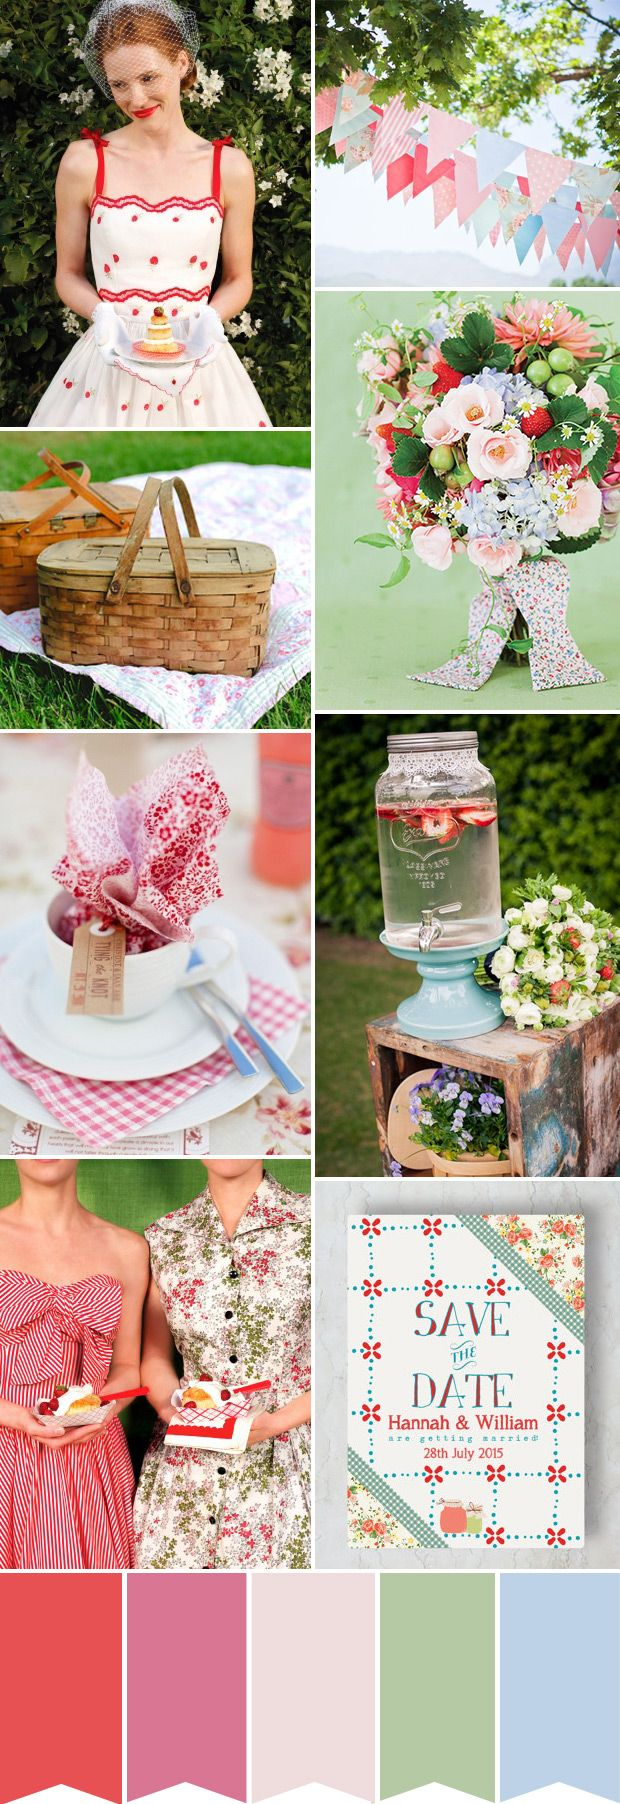 Summer Lovin How To Create The Perfect Picnic Wedding